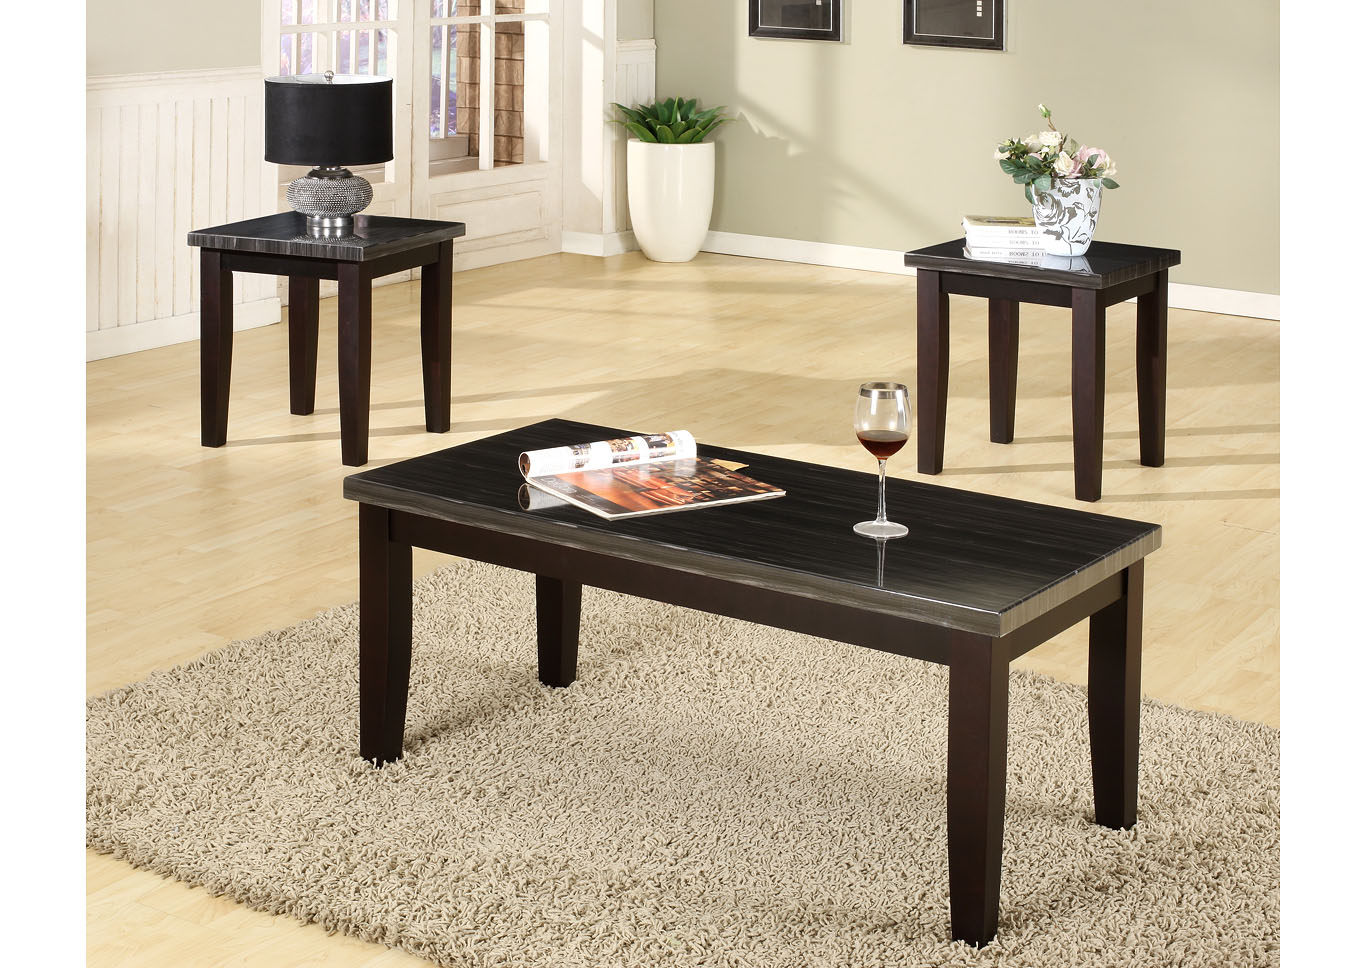 Black 3 Piece Faux Marble Top Coffee & End Table Set,Global Trading